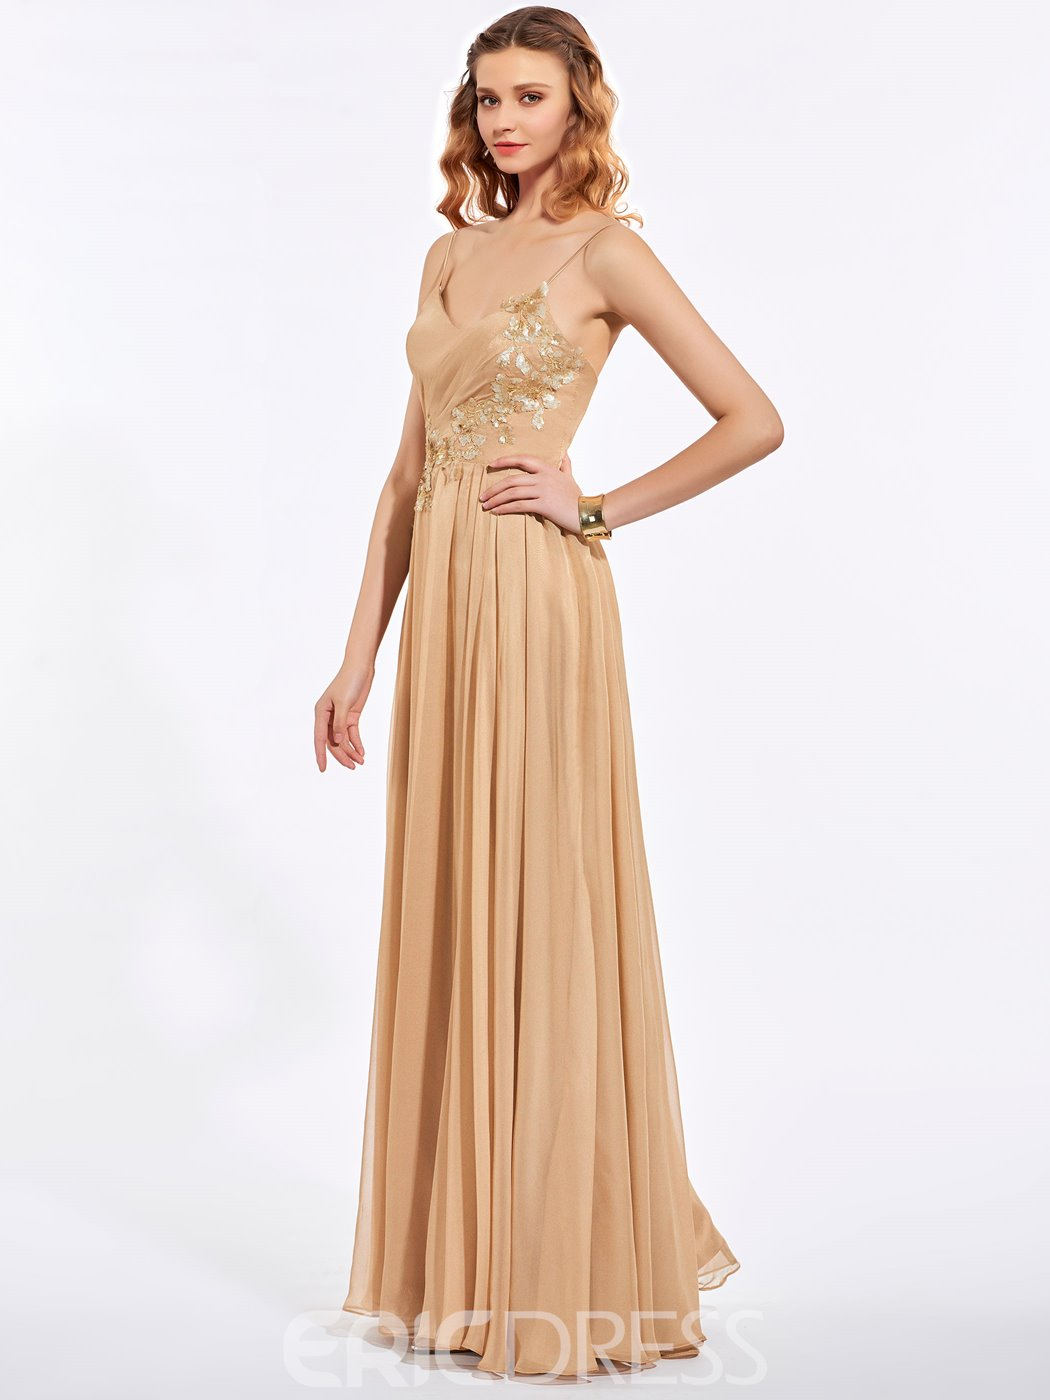 Ericdress A Line Spaghetti Straps Sequin Applique Floor Length Long Prom Dress